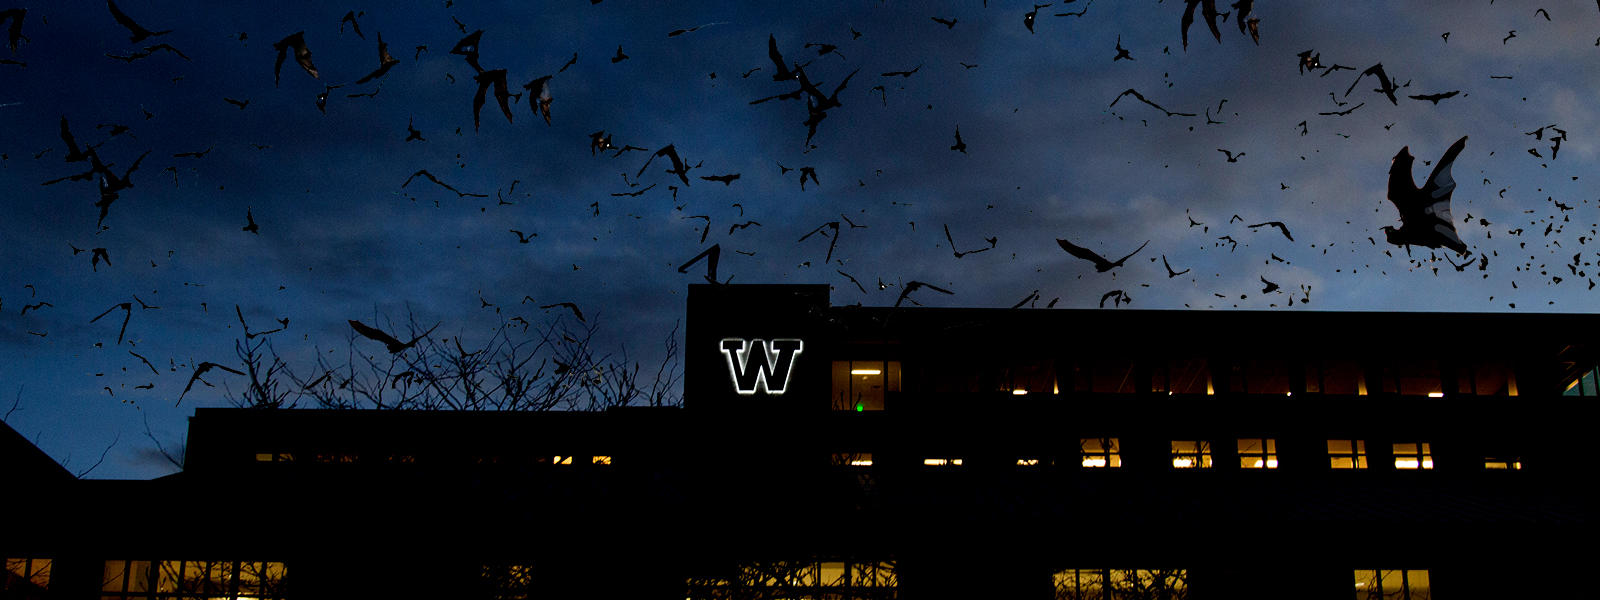 Photo illustration with bats in the sky at night above a UW Tacoma building